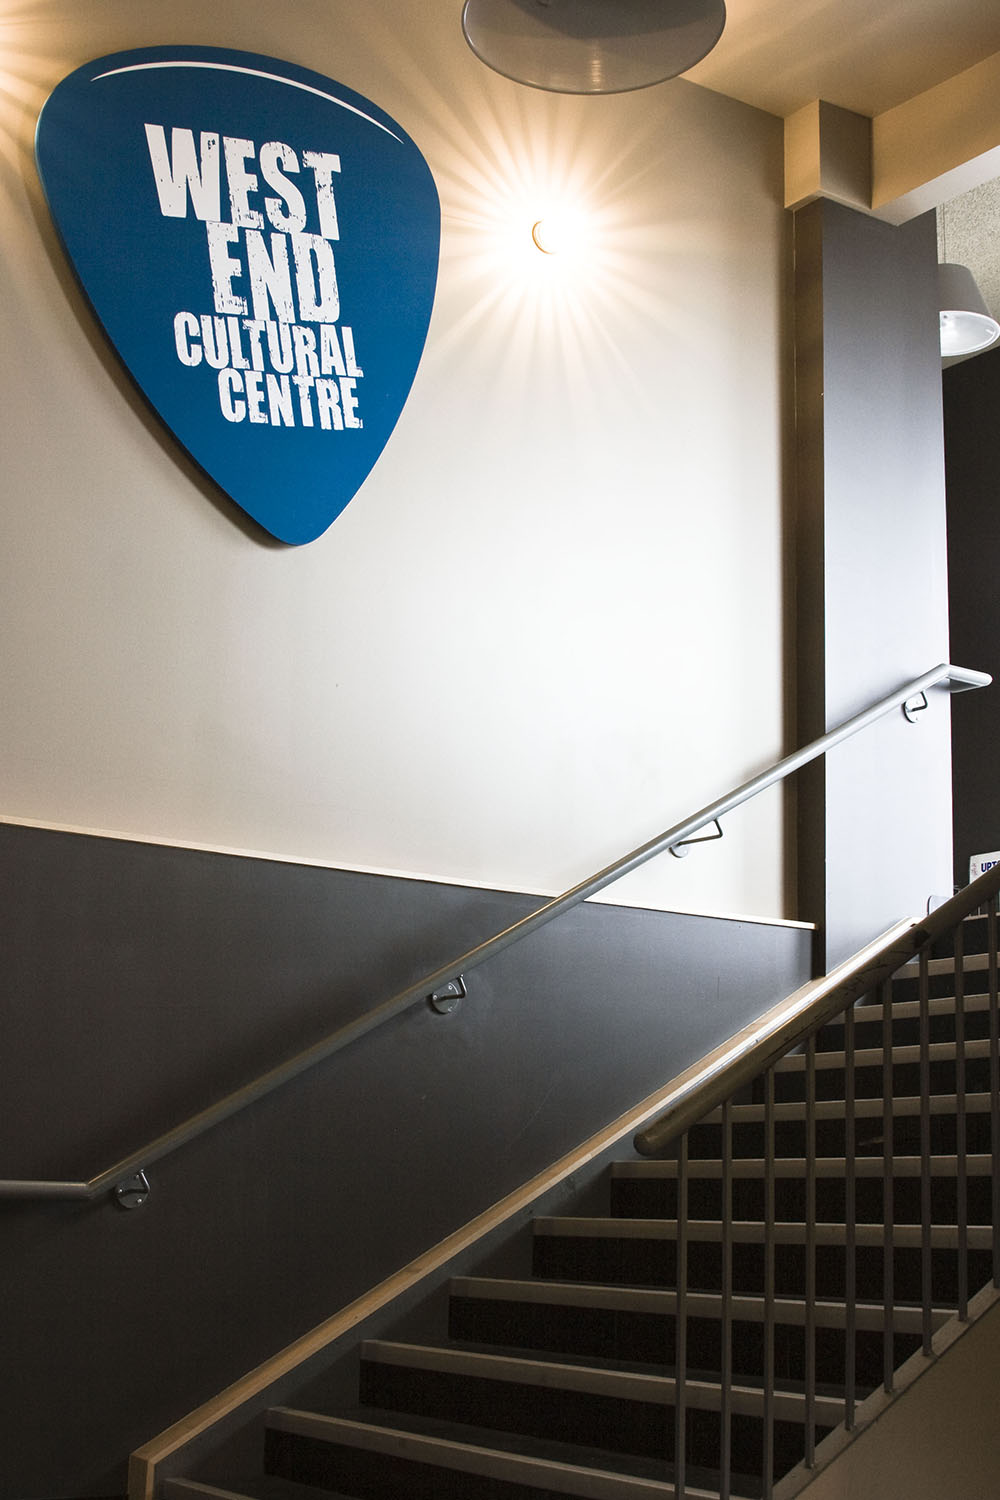 West End Cultural Centre, interior photo of stairs and sign / Photo: Tracy A Wieler